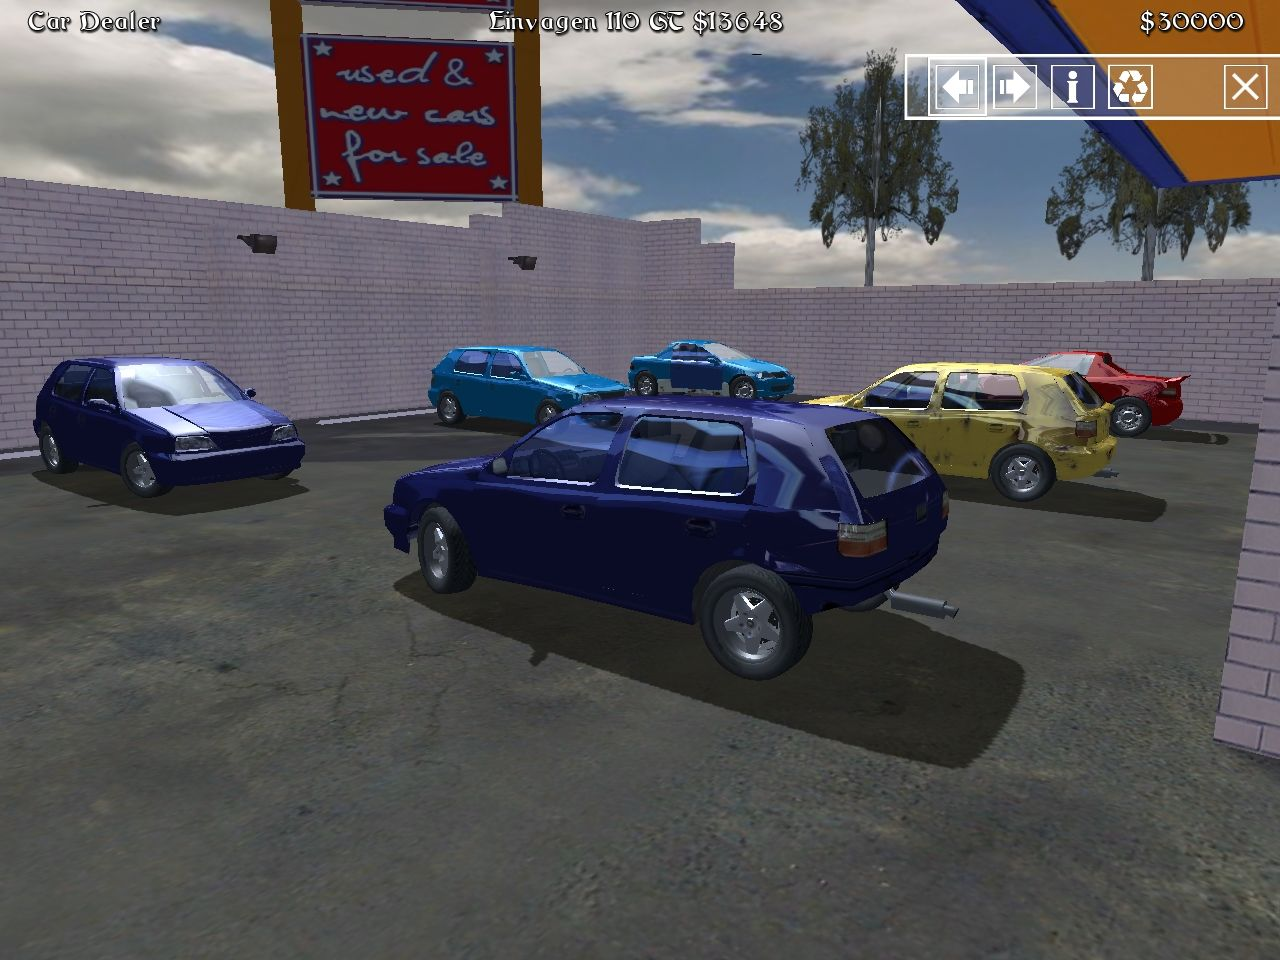 Street Legal Racing: Redline Screenshots for Windows - MobyGames